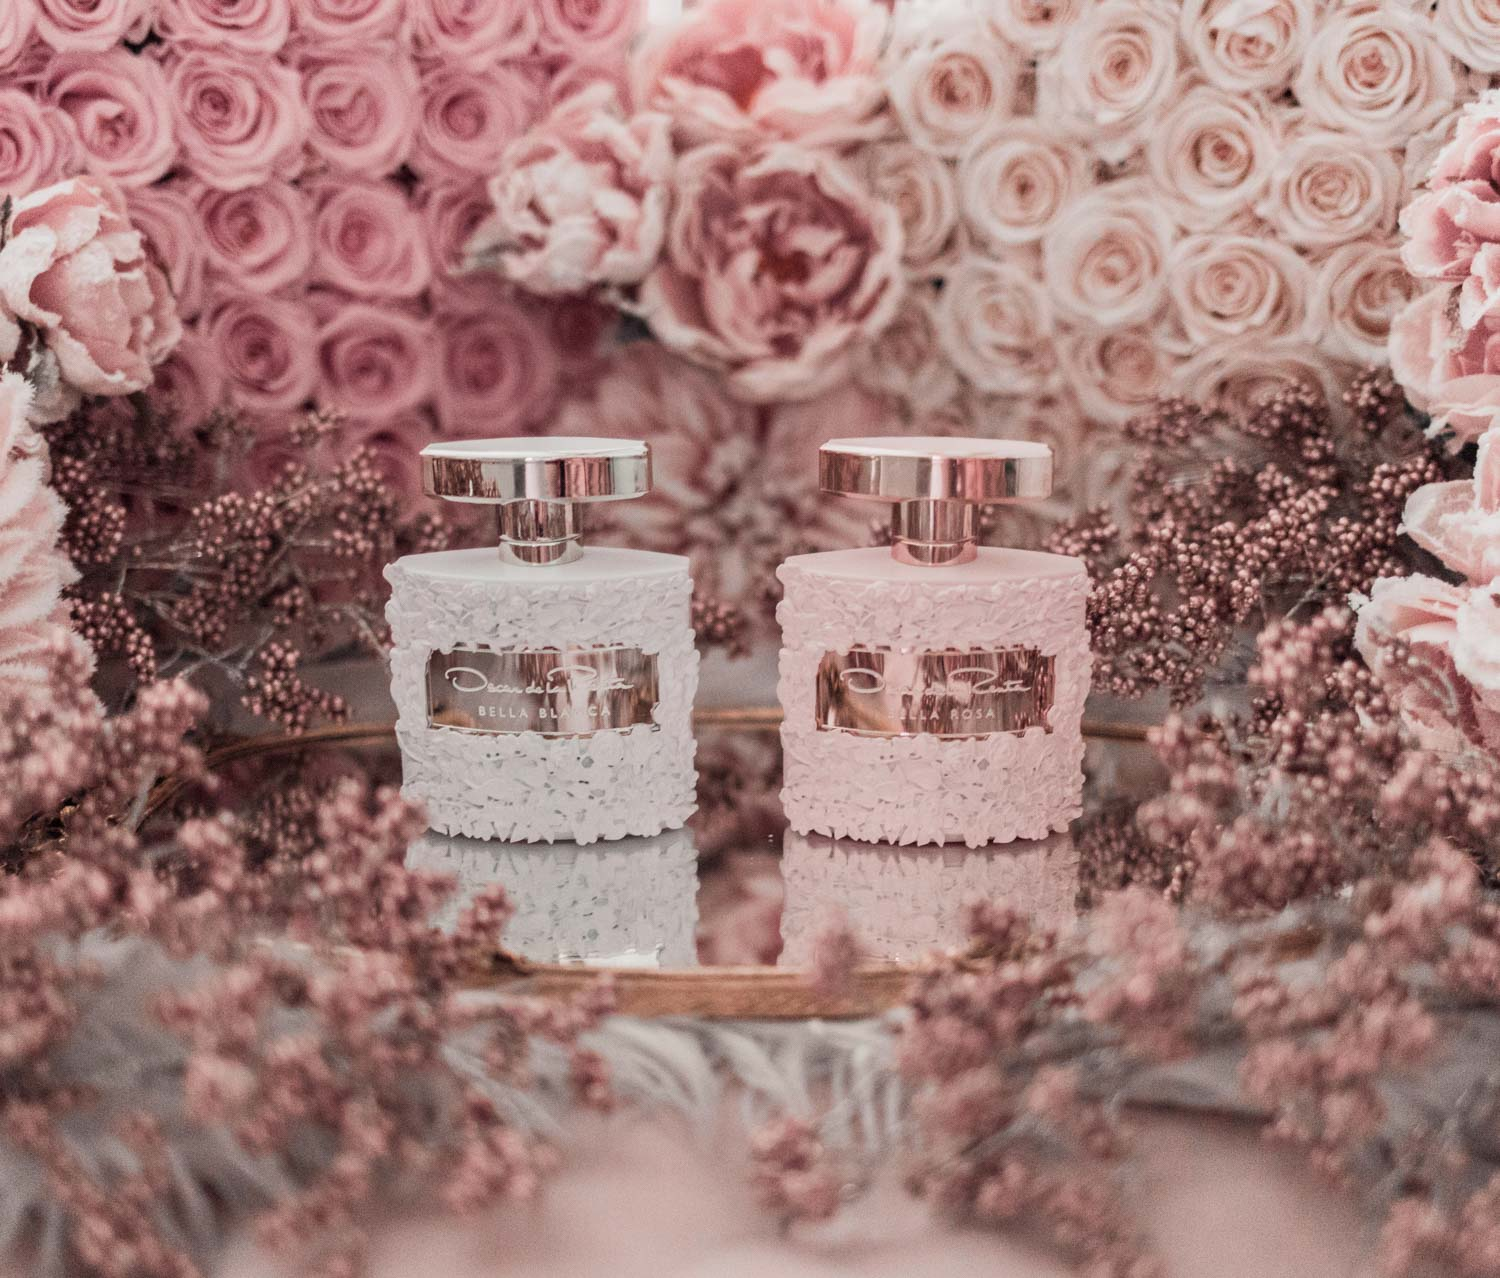 Feminine fashion blogger Elizabeth Hugen of Lizzie in Lace shares the best feminine perfumes and her girly fragrance collection including Oscar de la Renta Bella Blanca and Bella Rosa